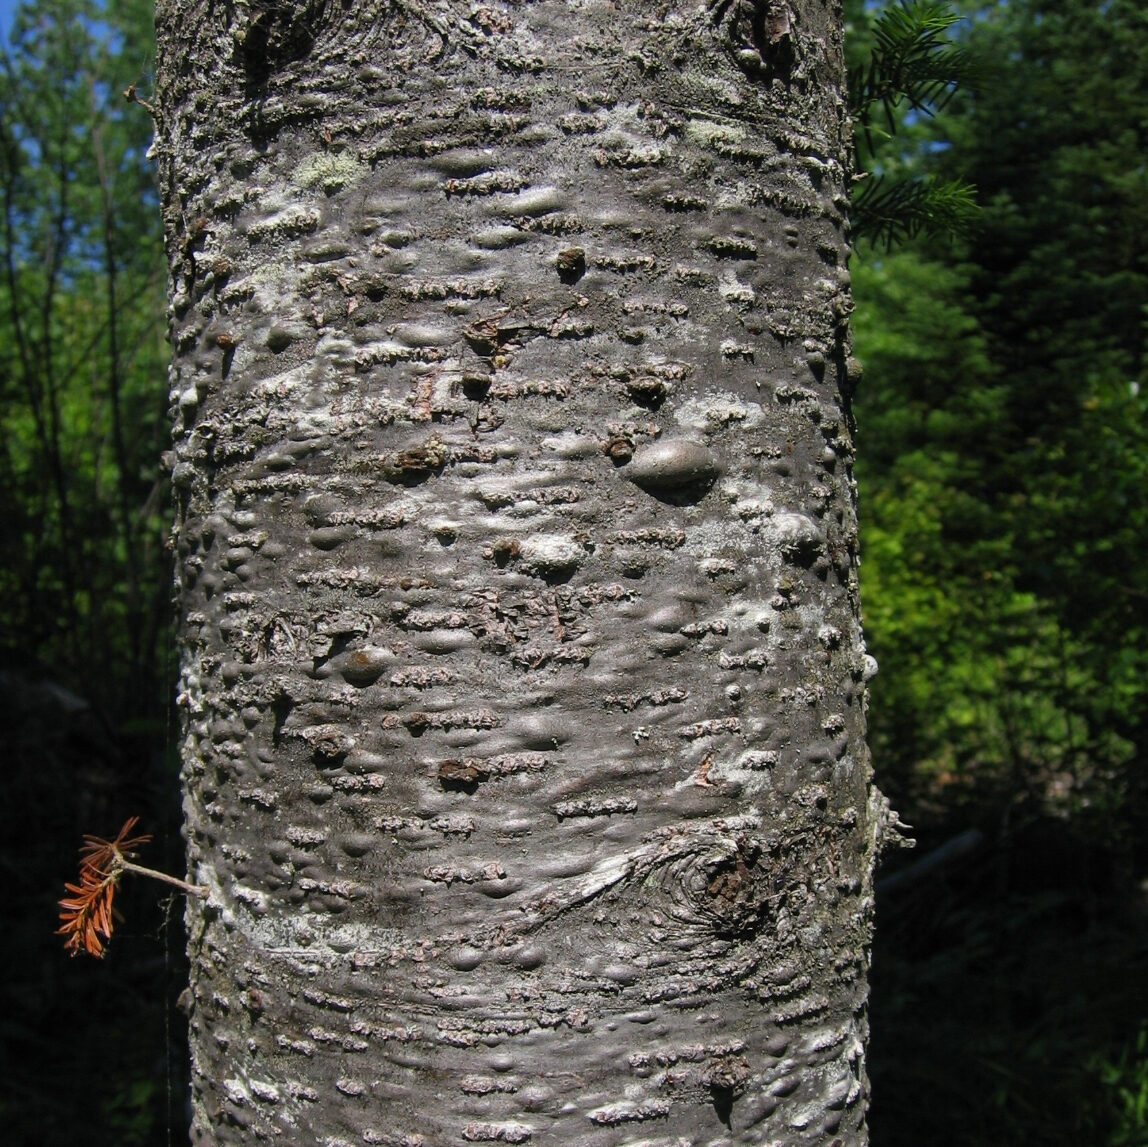 Bark of a balsam fir. There are resin filled blisters all over the bark.